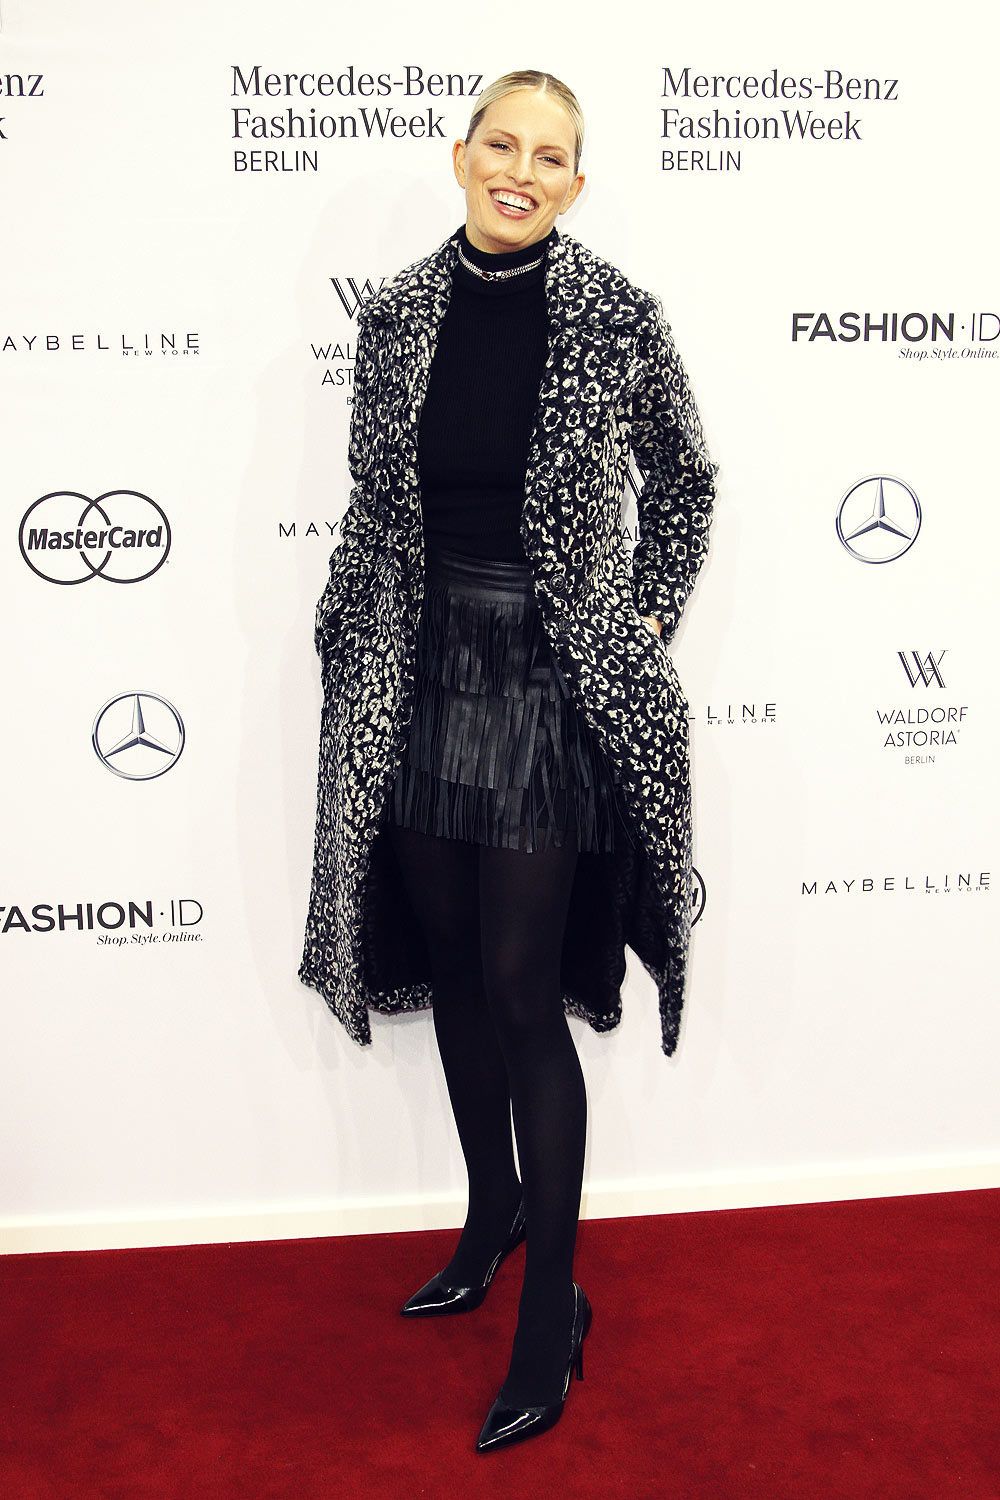 Karolina Kurkova attends Maria Kretschmer show during the Mercedes-Benz Fashion Week Berlin